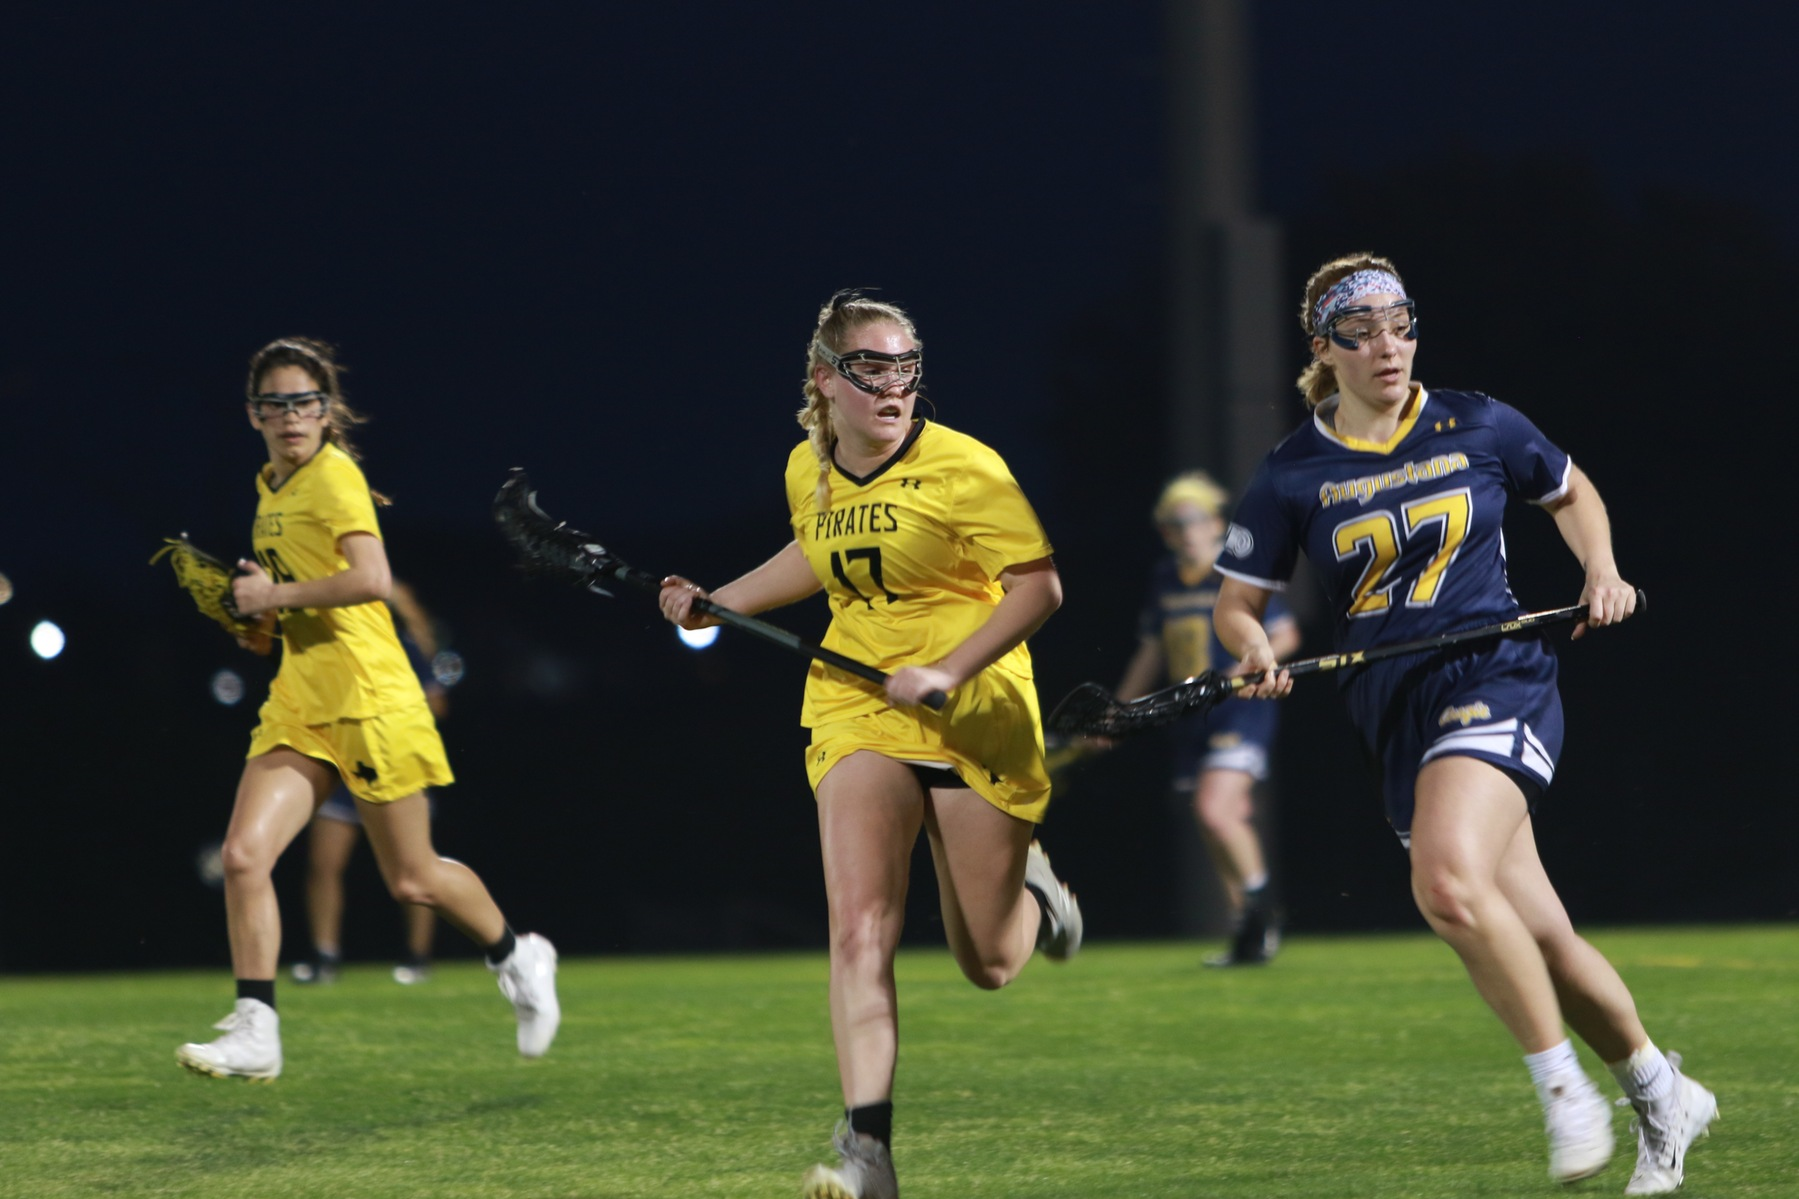 Women's Lacrosse Closes First Half on 9-2 Run to Defeat University of Dallas